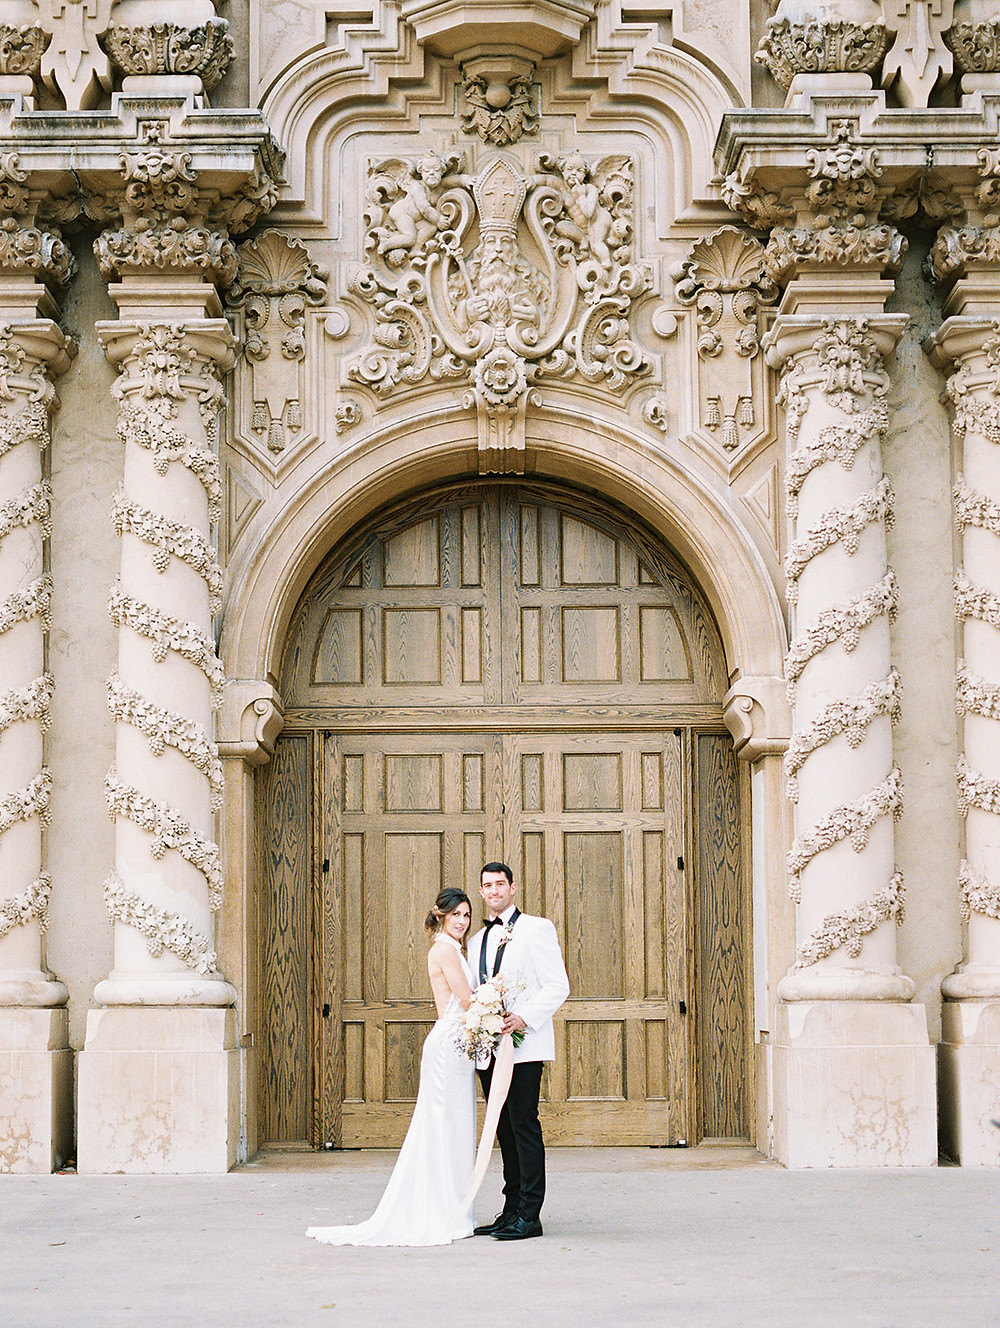 Elegant and classic 1920's inspired elopement at Balboa Park with a whimsical and neutral  bridal bouquet by San Diego Wedding Florist Le Champange Projects